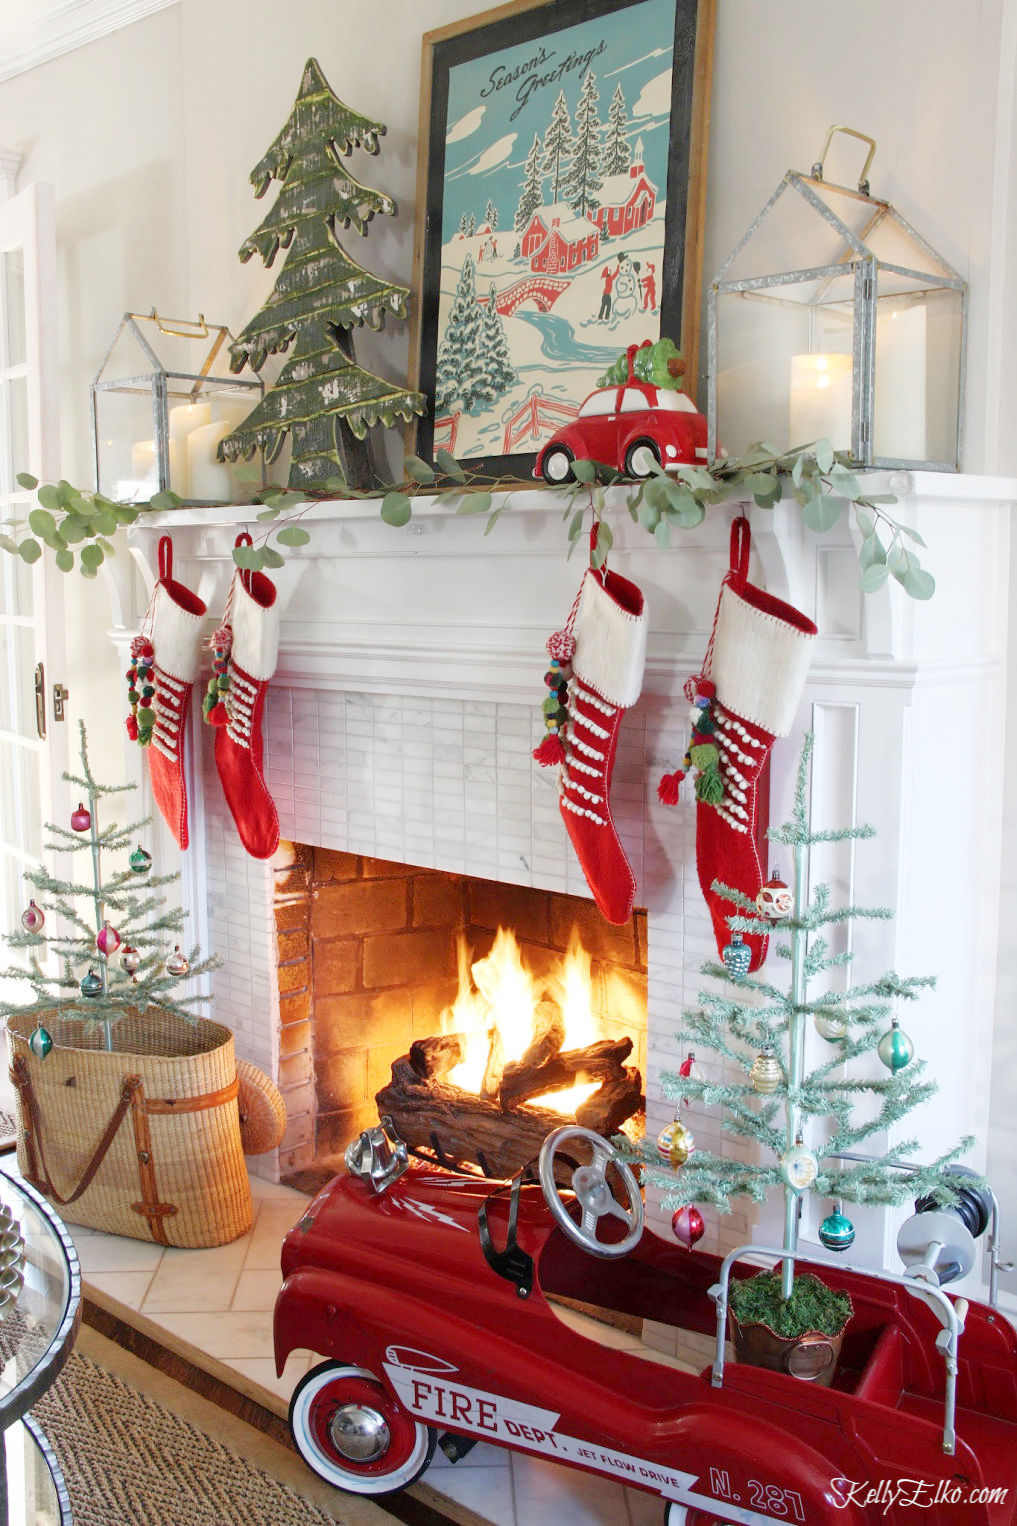 Festive Christmas Decorating Ideas - love this whimsical mantel with vintage firetruck pedal car and red stockings kellyelko.com #christmas #christmasdecor #christmasmantel #christmasstockings #vintagechristmas #feathertrees #fireplace #kellyelko